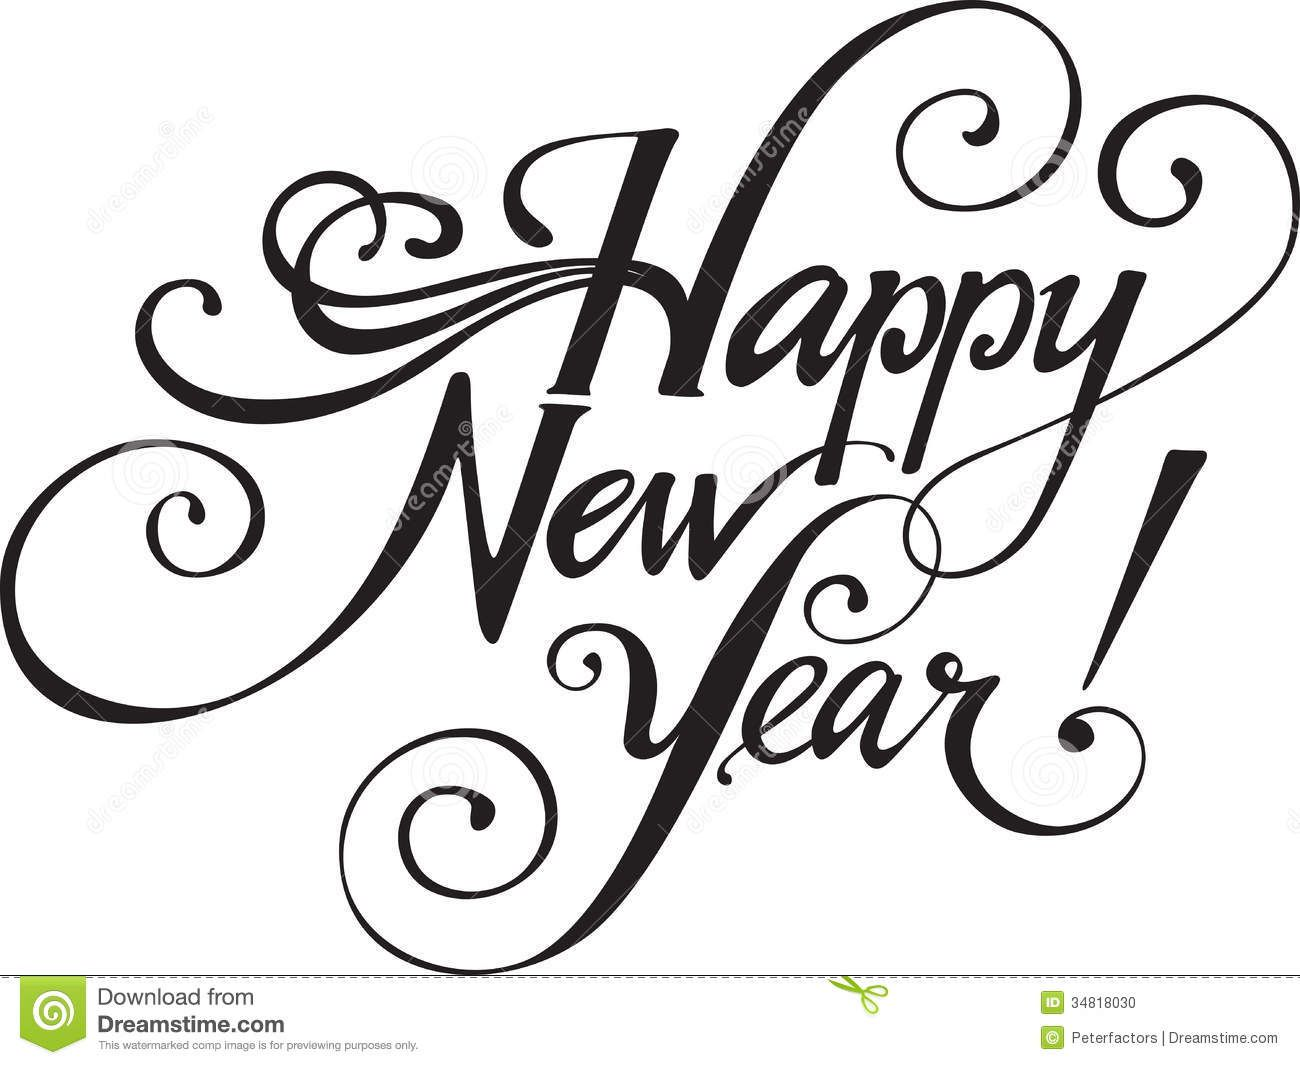 Clipart free 2016 new year black and white clip library stock New Years 2016 Clipart | Free download best New Years 2016 Clipart ... clip library stock